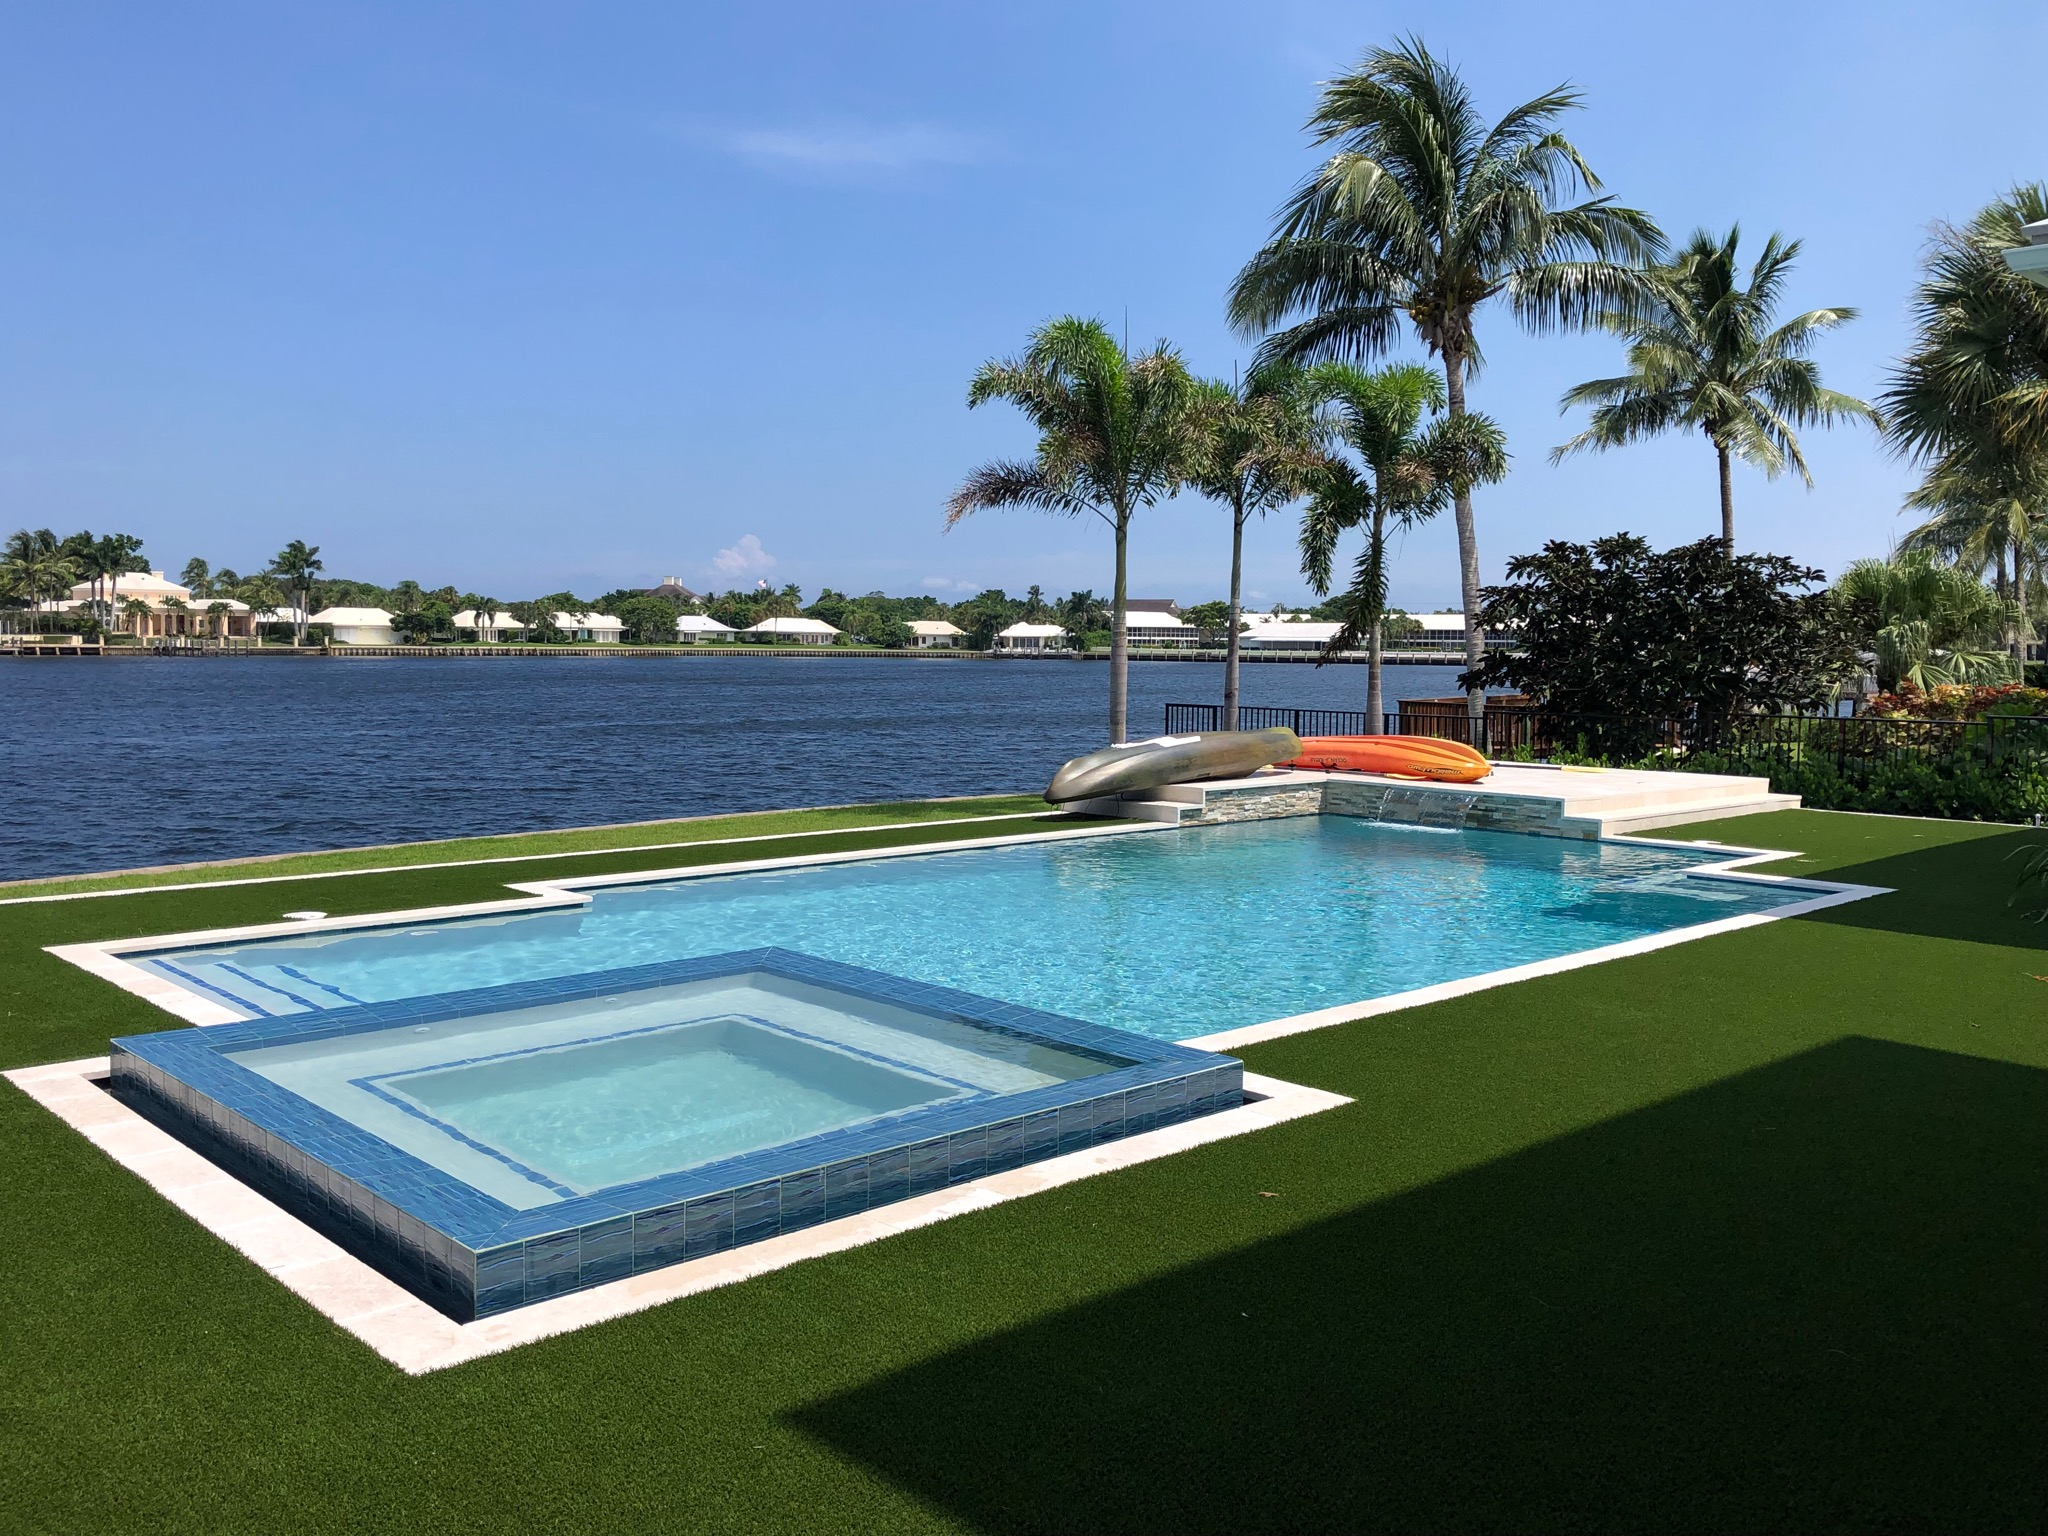 rhr pools of jupiter fl large spa with infinity edge and raised area for entertaining